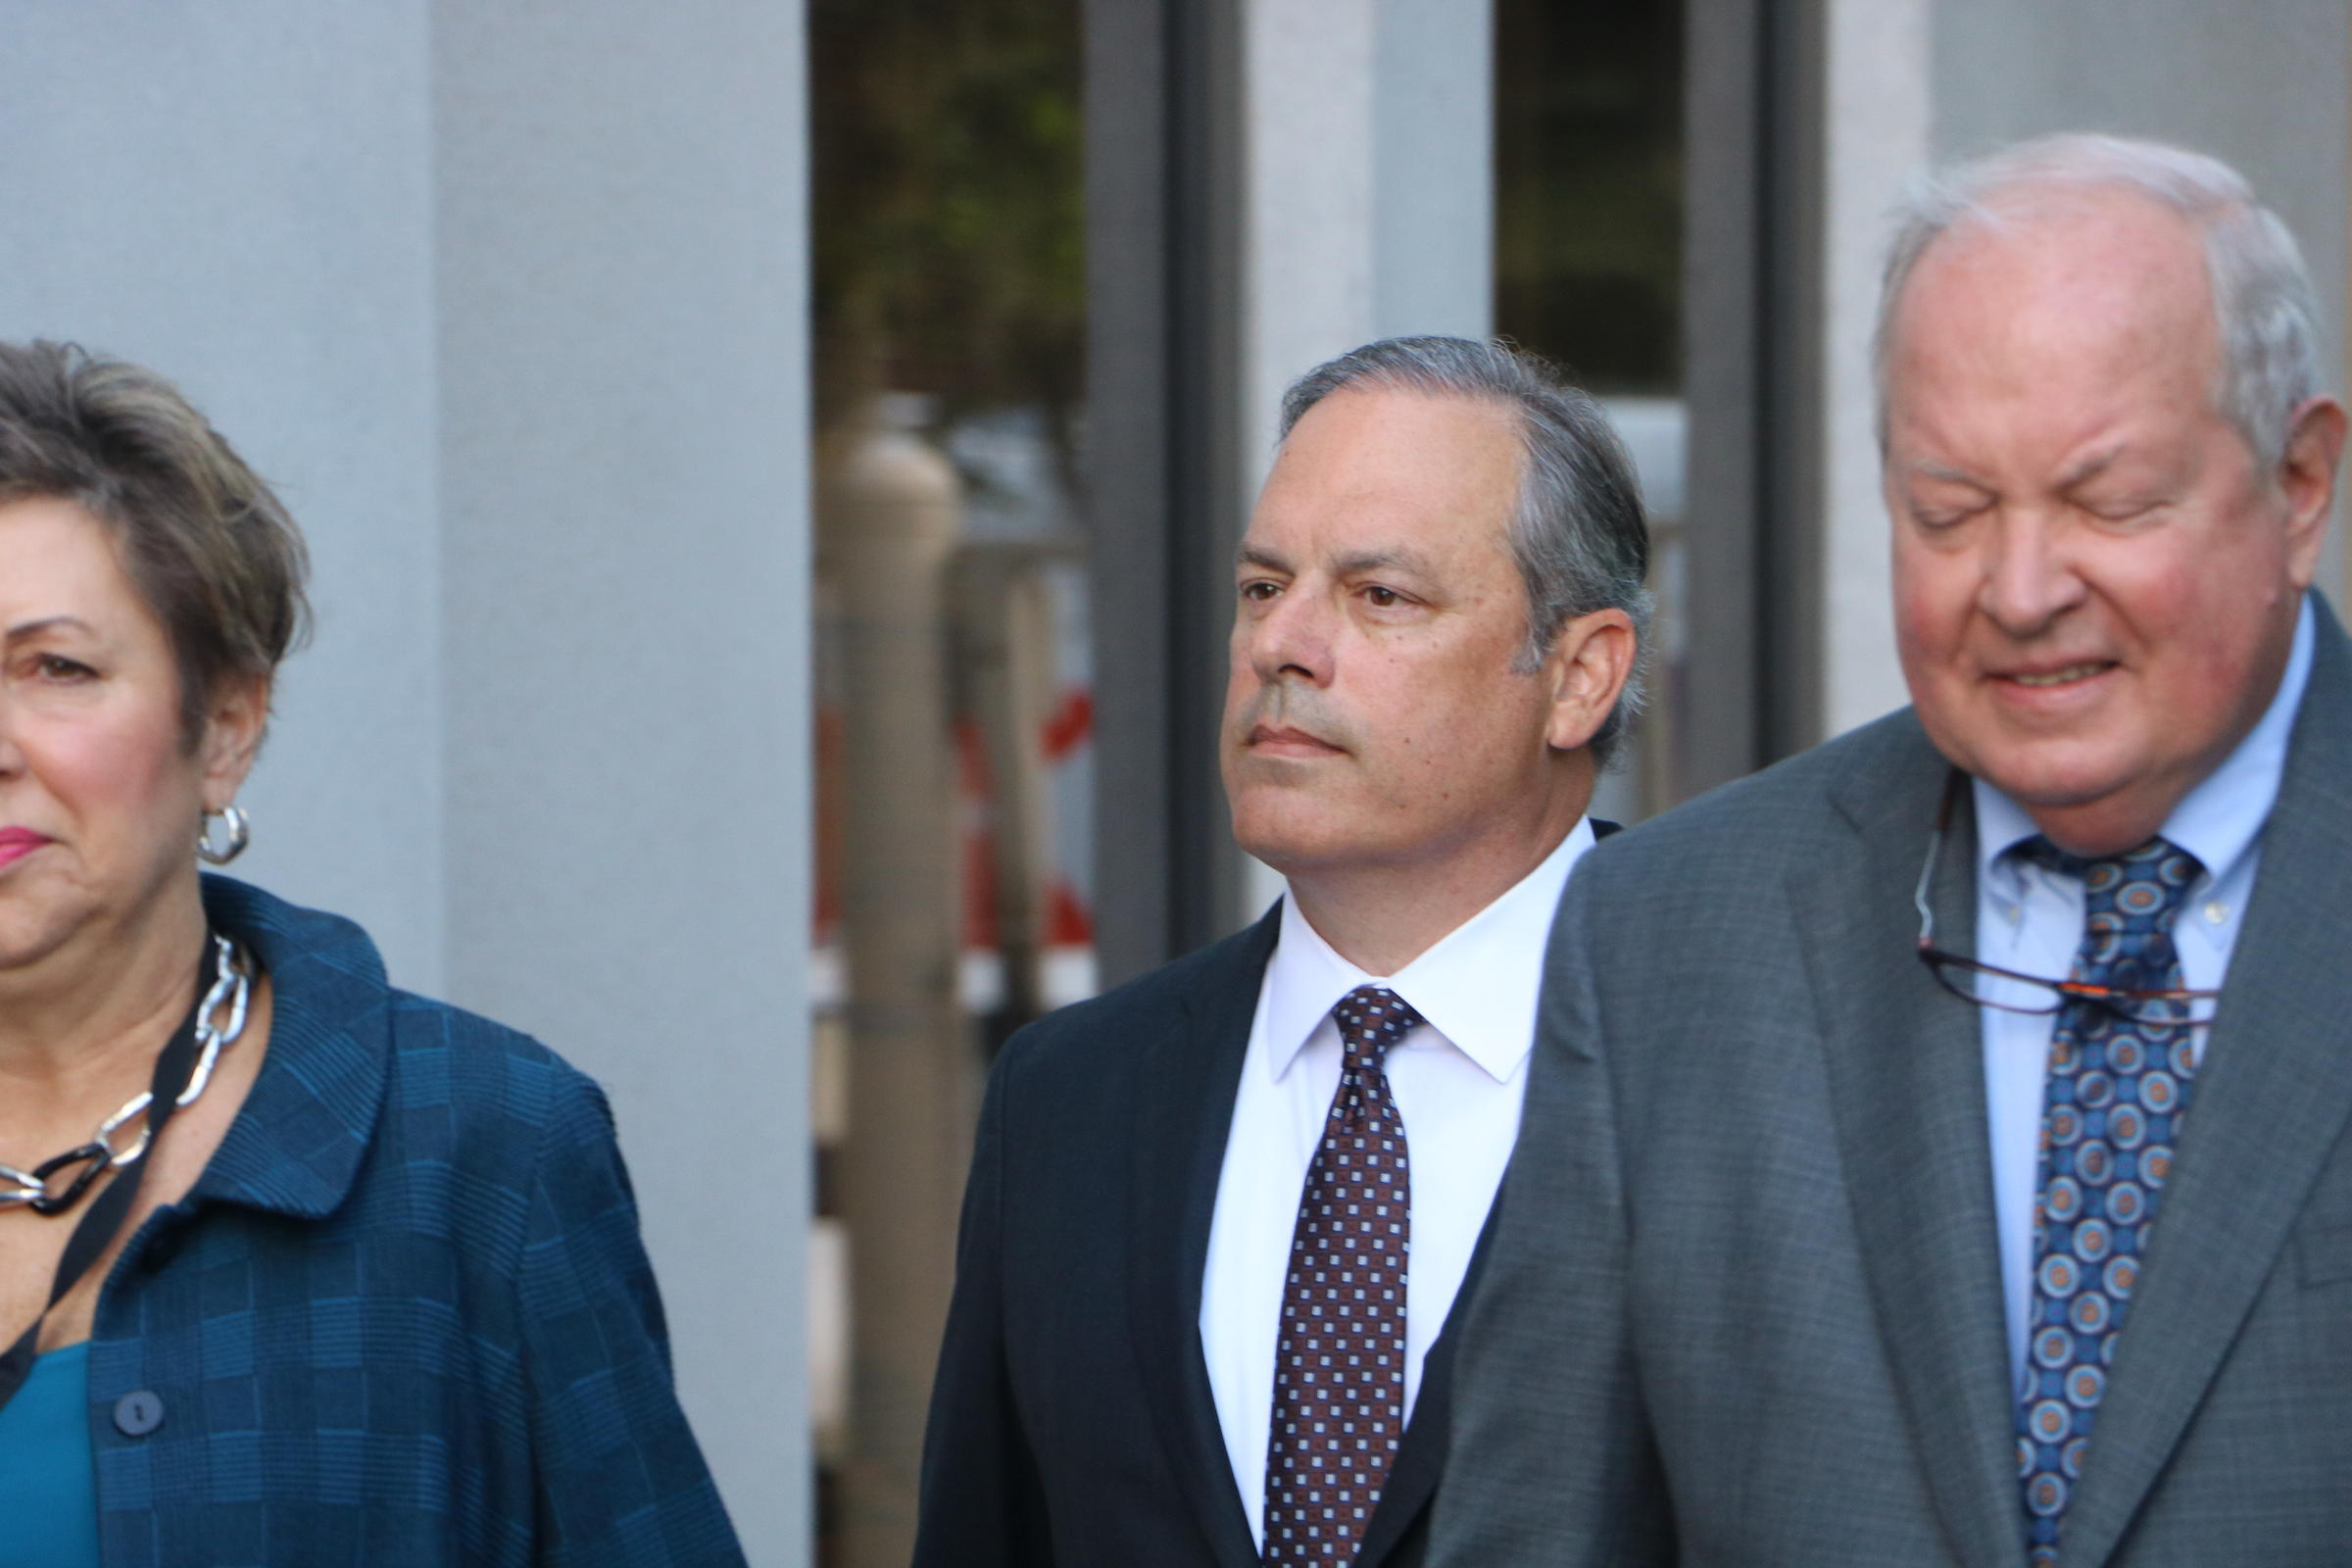 Maddox, Carter-Smith Plead 'Guilty' In Federal Corruption Probe, 39